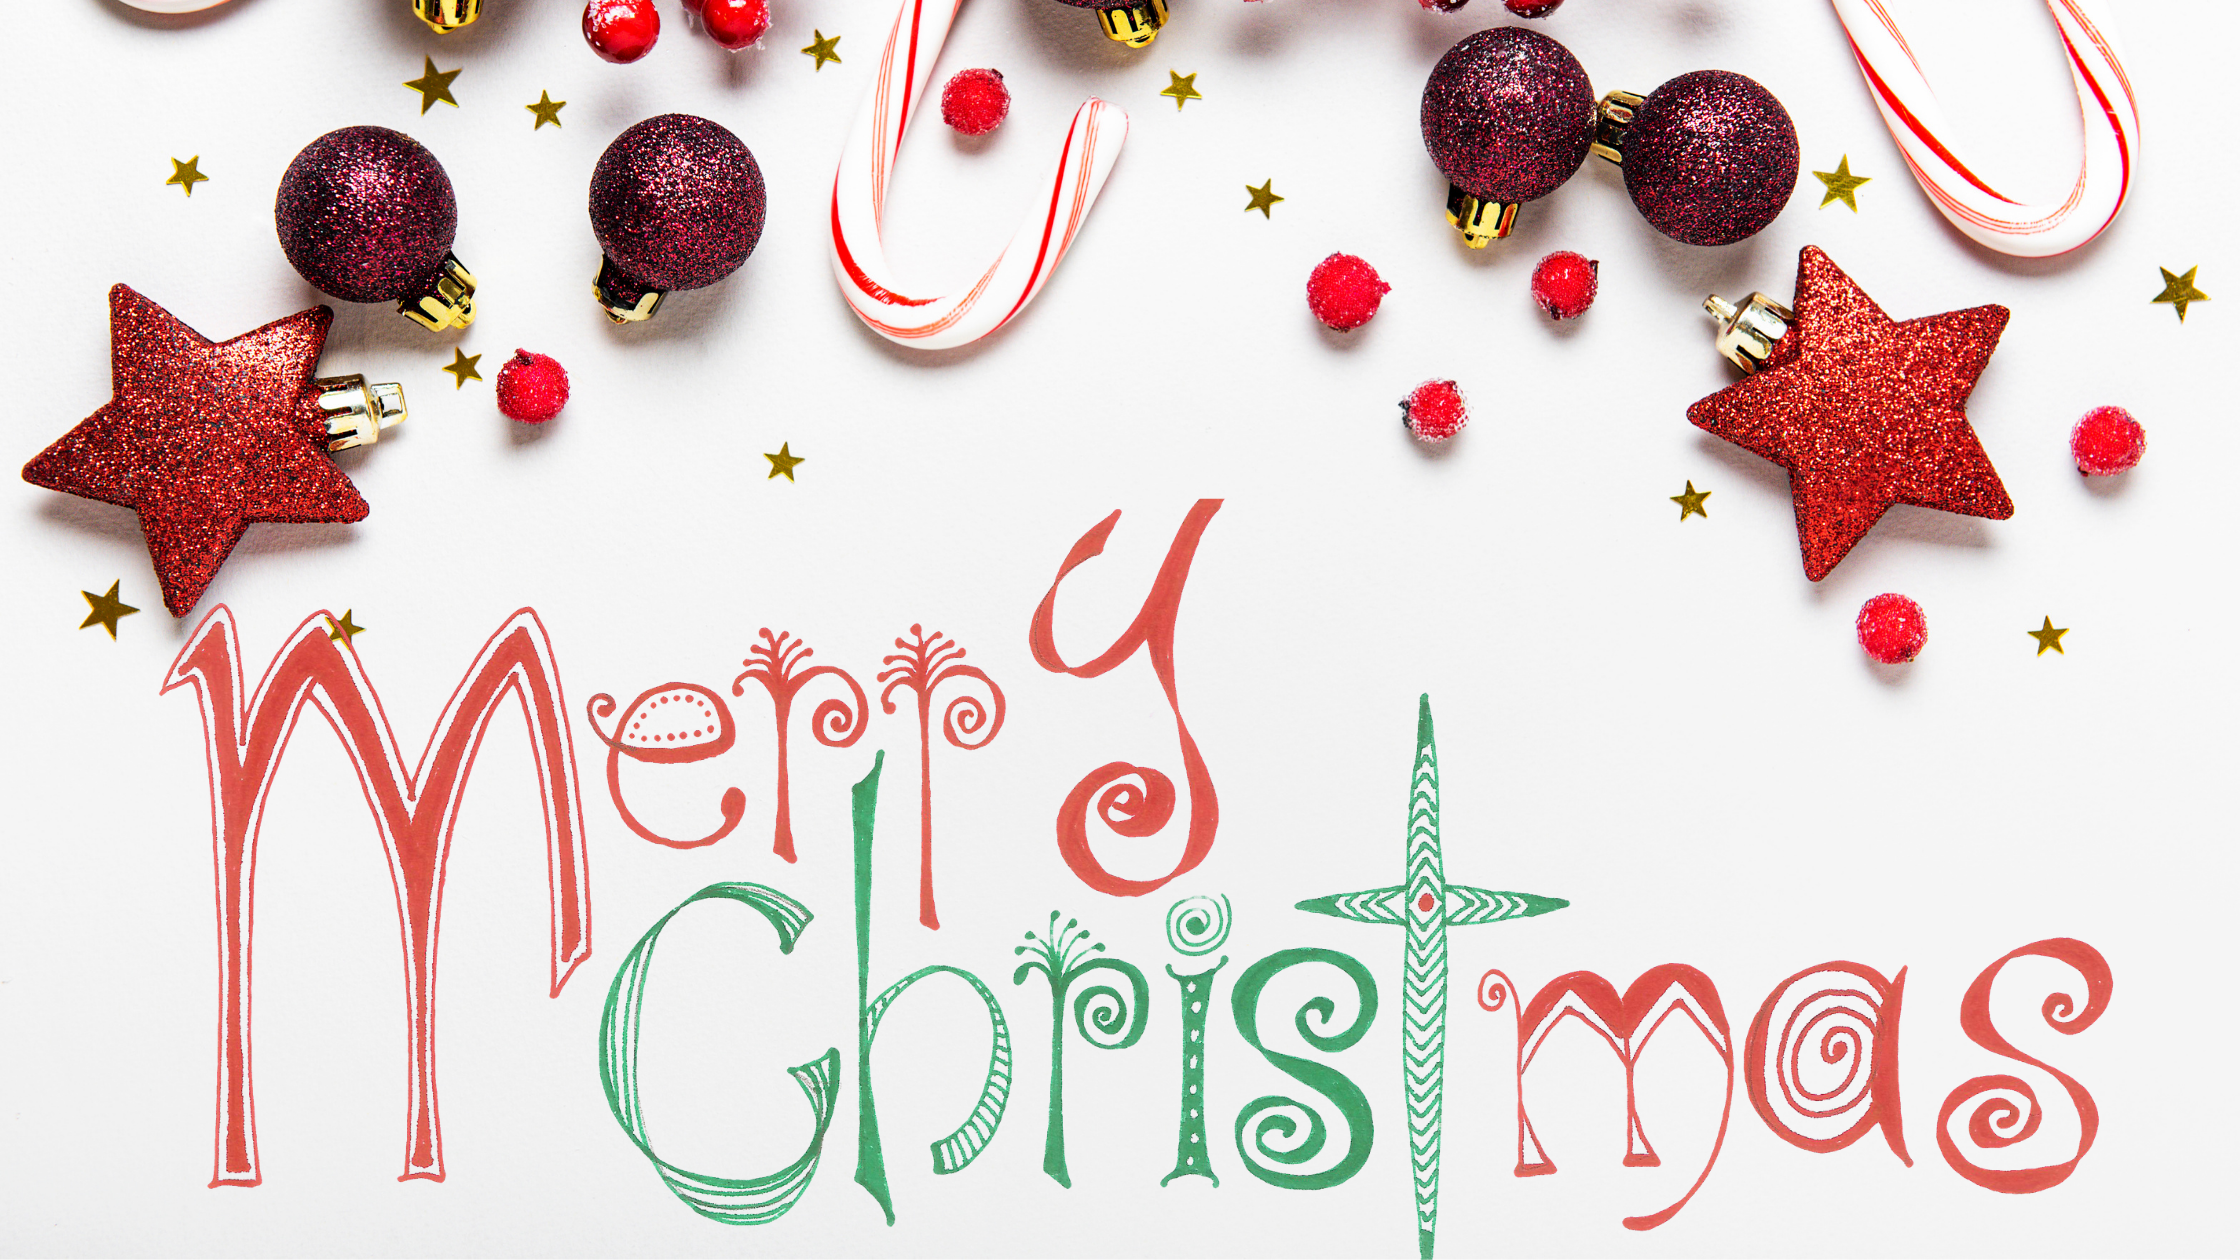 Merry Christmas from Wills & Smerdon